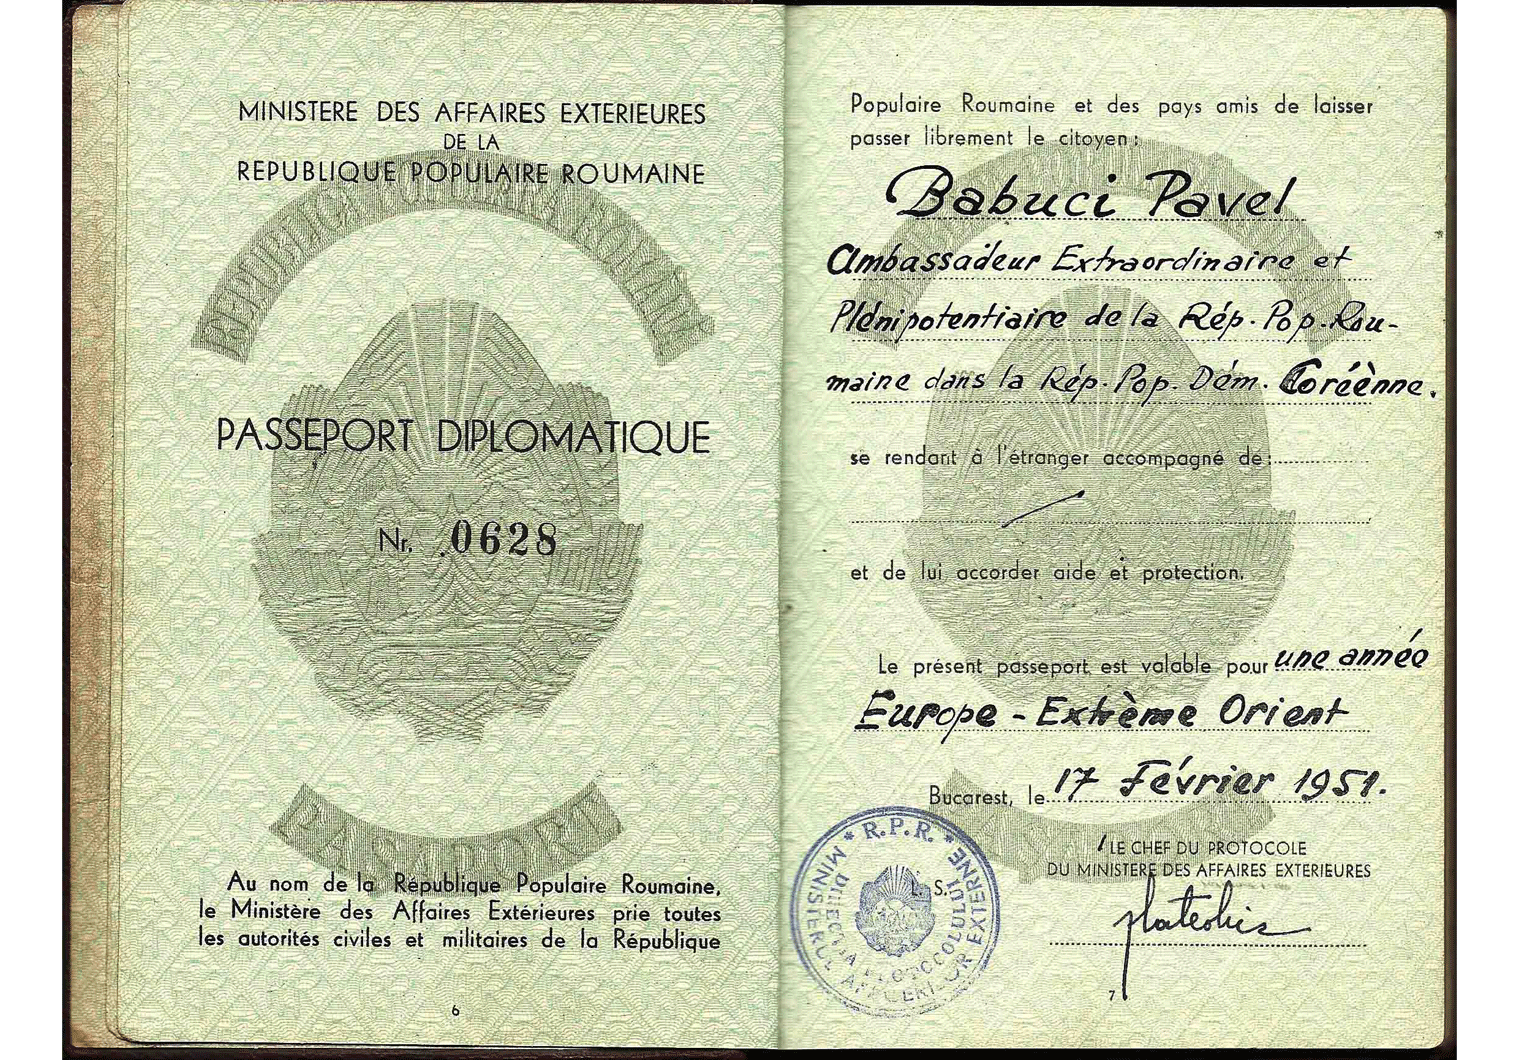 Rarest of visas - North Korean Diplomatic visa inside a 1951 passport